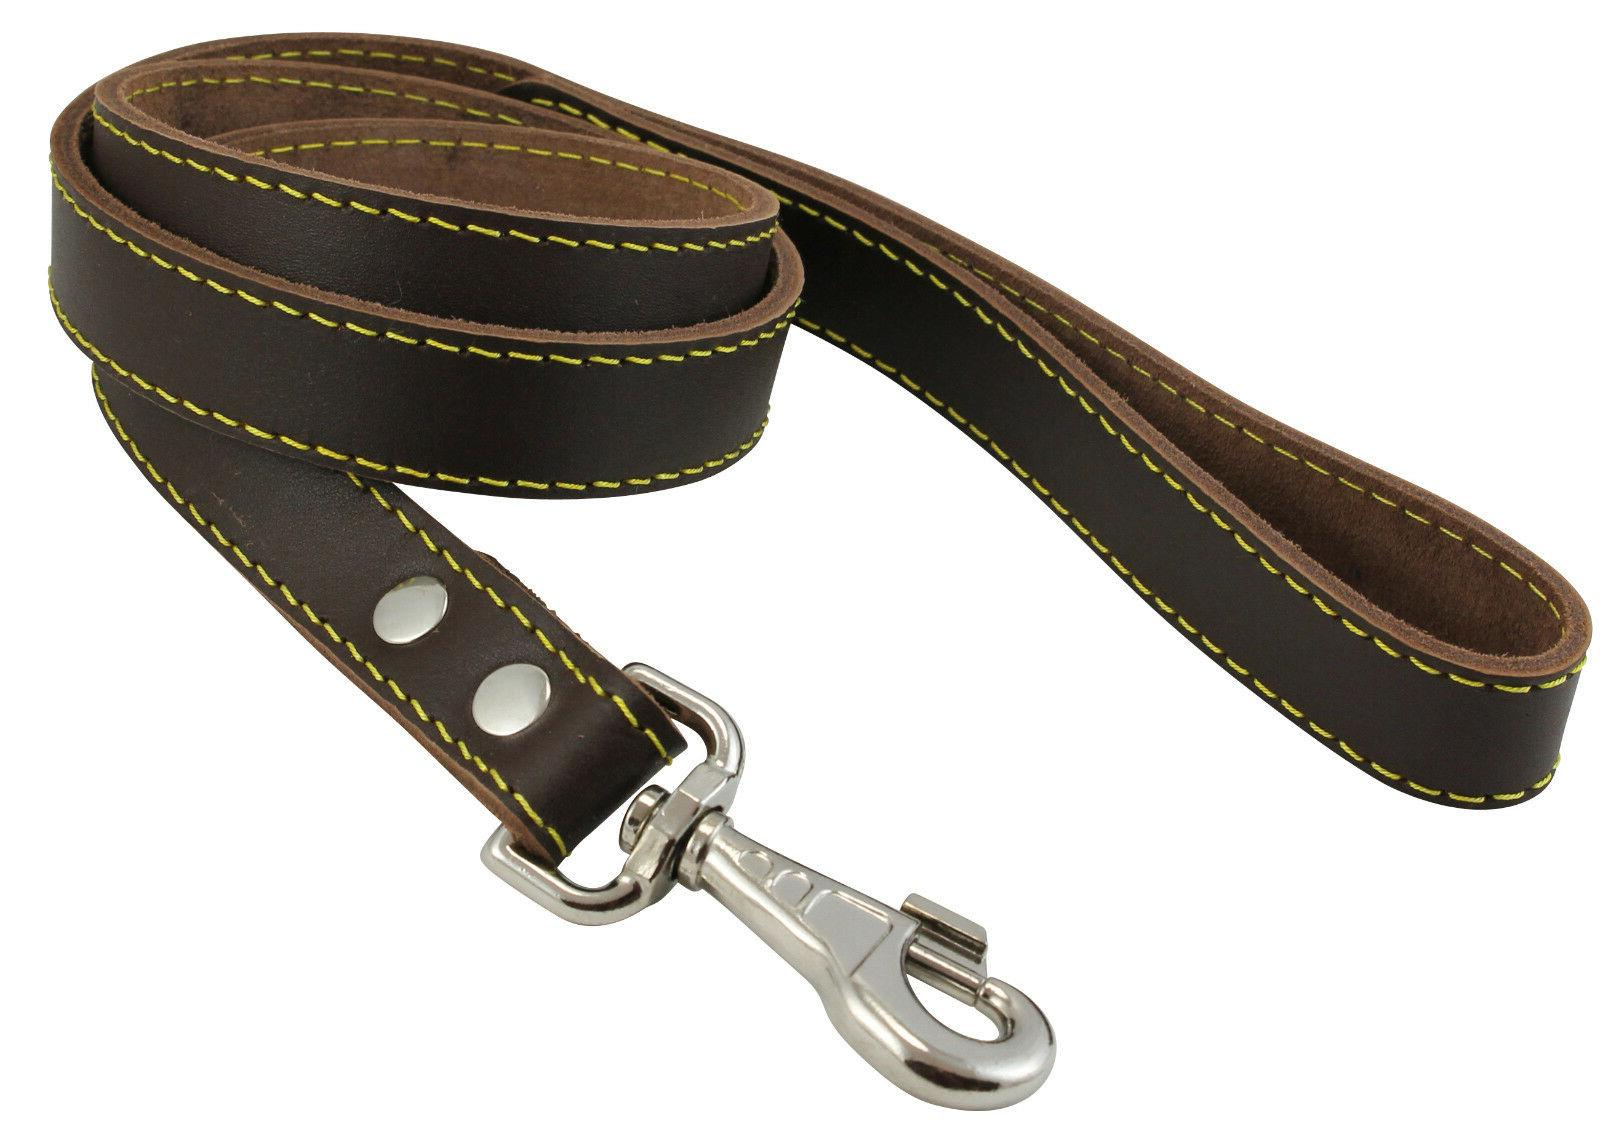 Genuine Thick Leather Dog Leash 4' wide, for